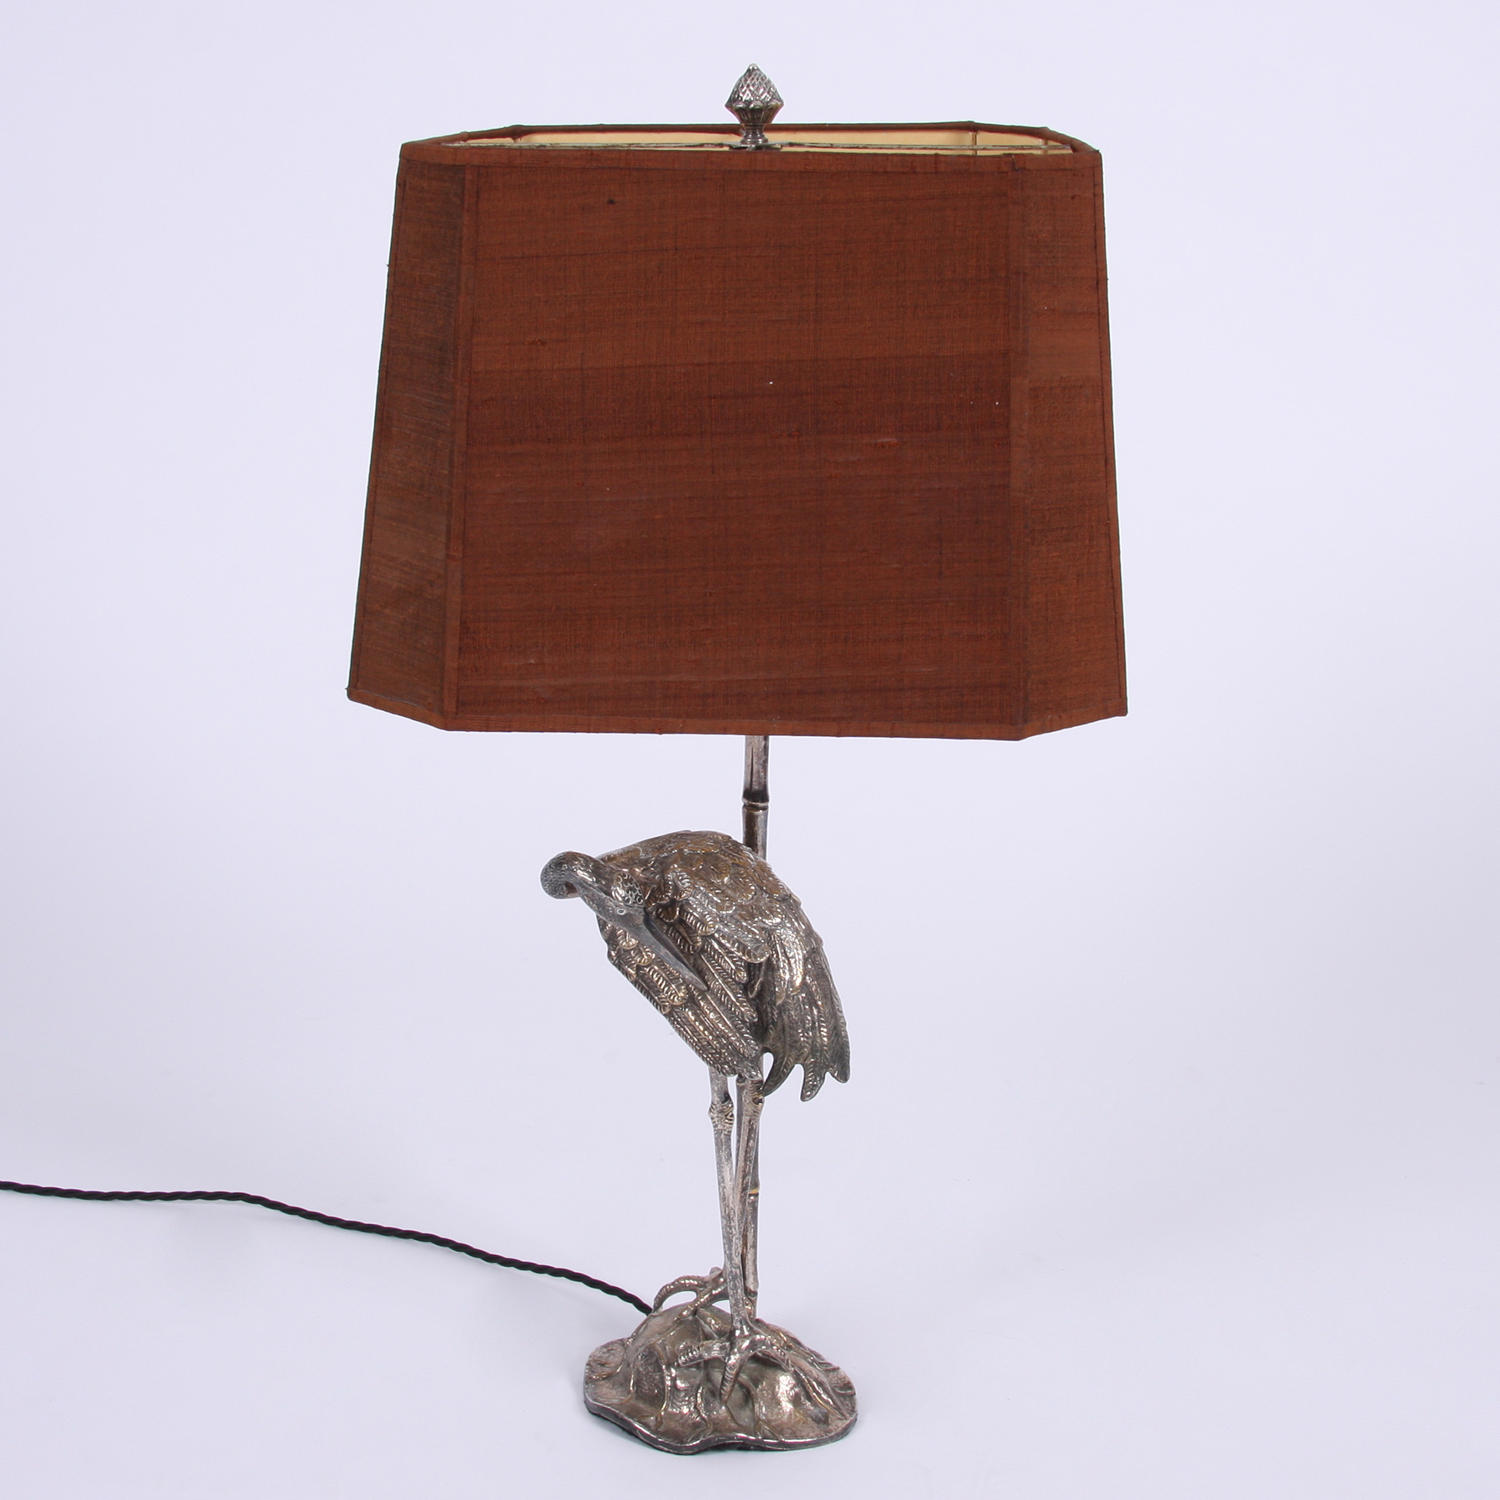 Stork Table Lamp